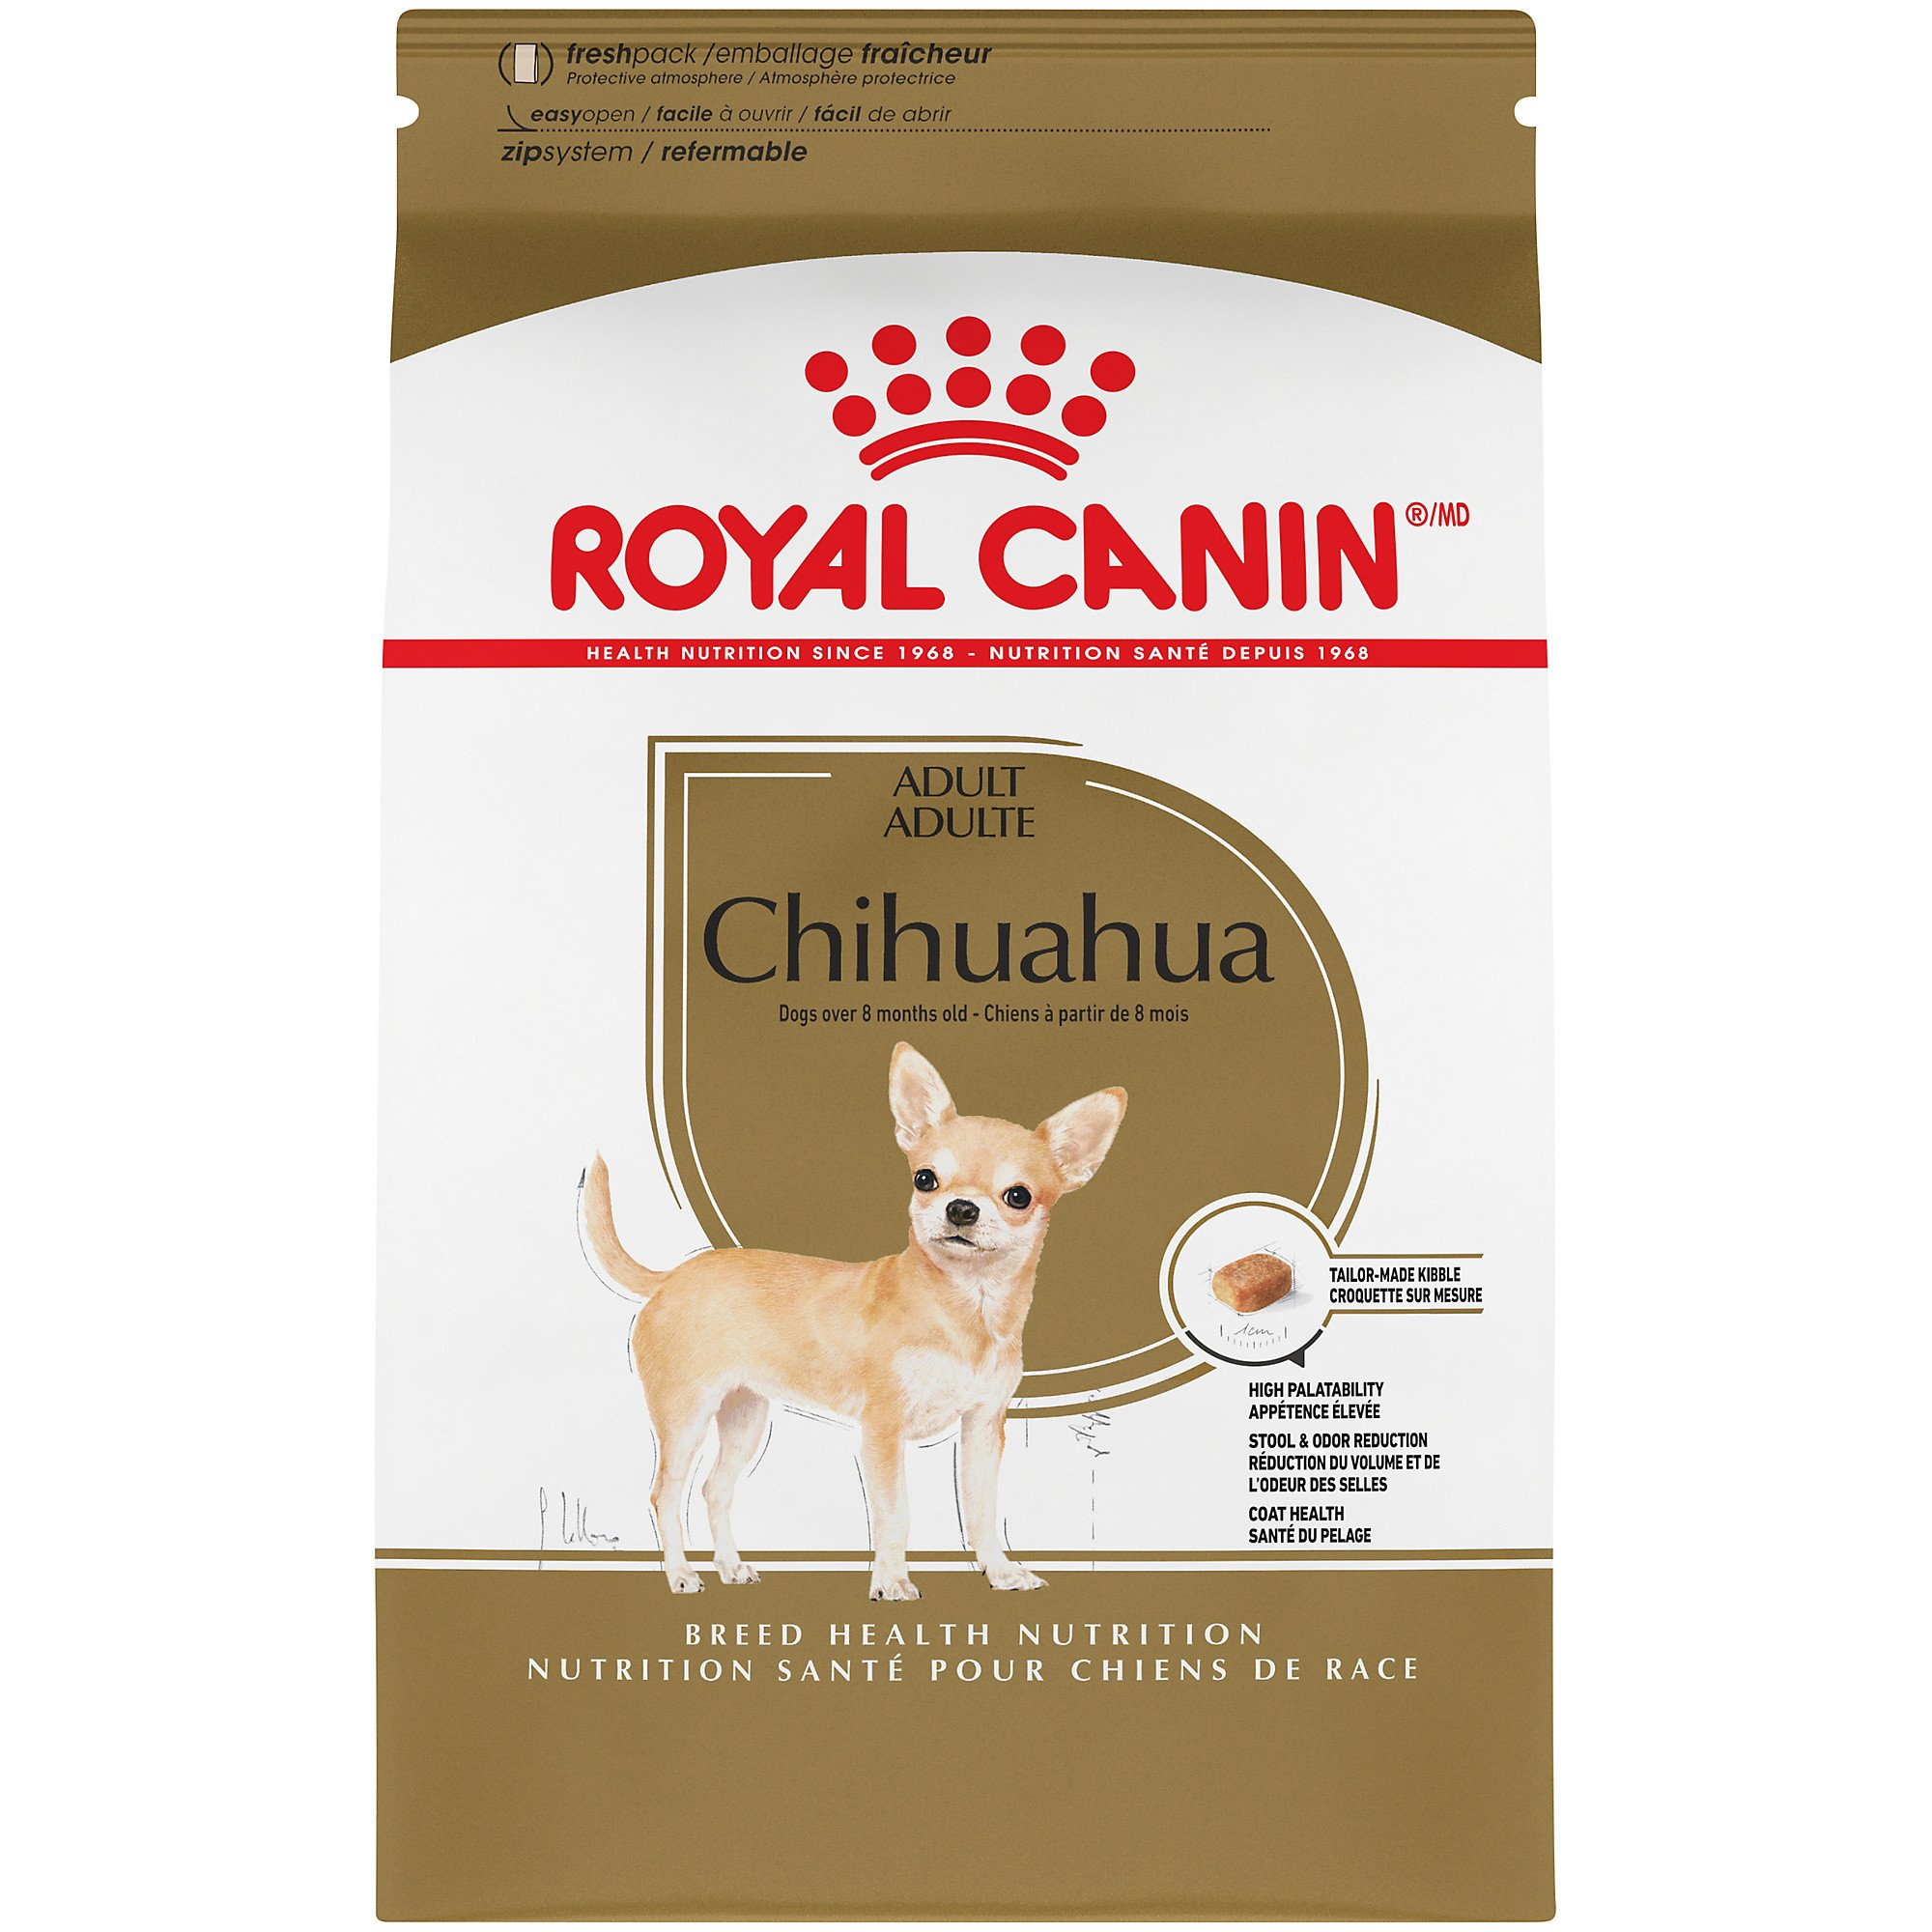 Royal Canin Breed Health Nutrition Chihuahua Adult Dry Dog Food, 2.5 lbs.